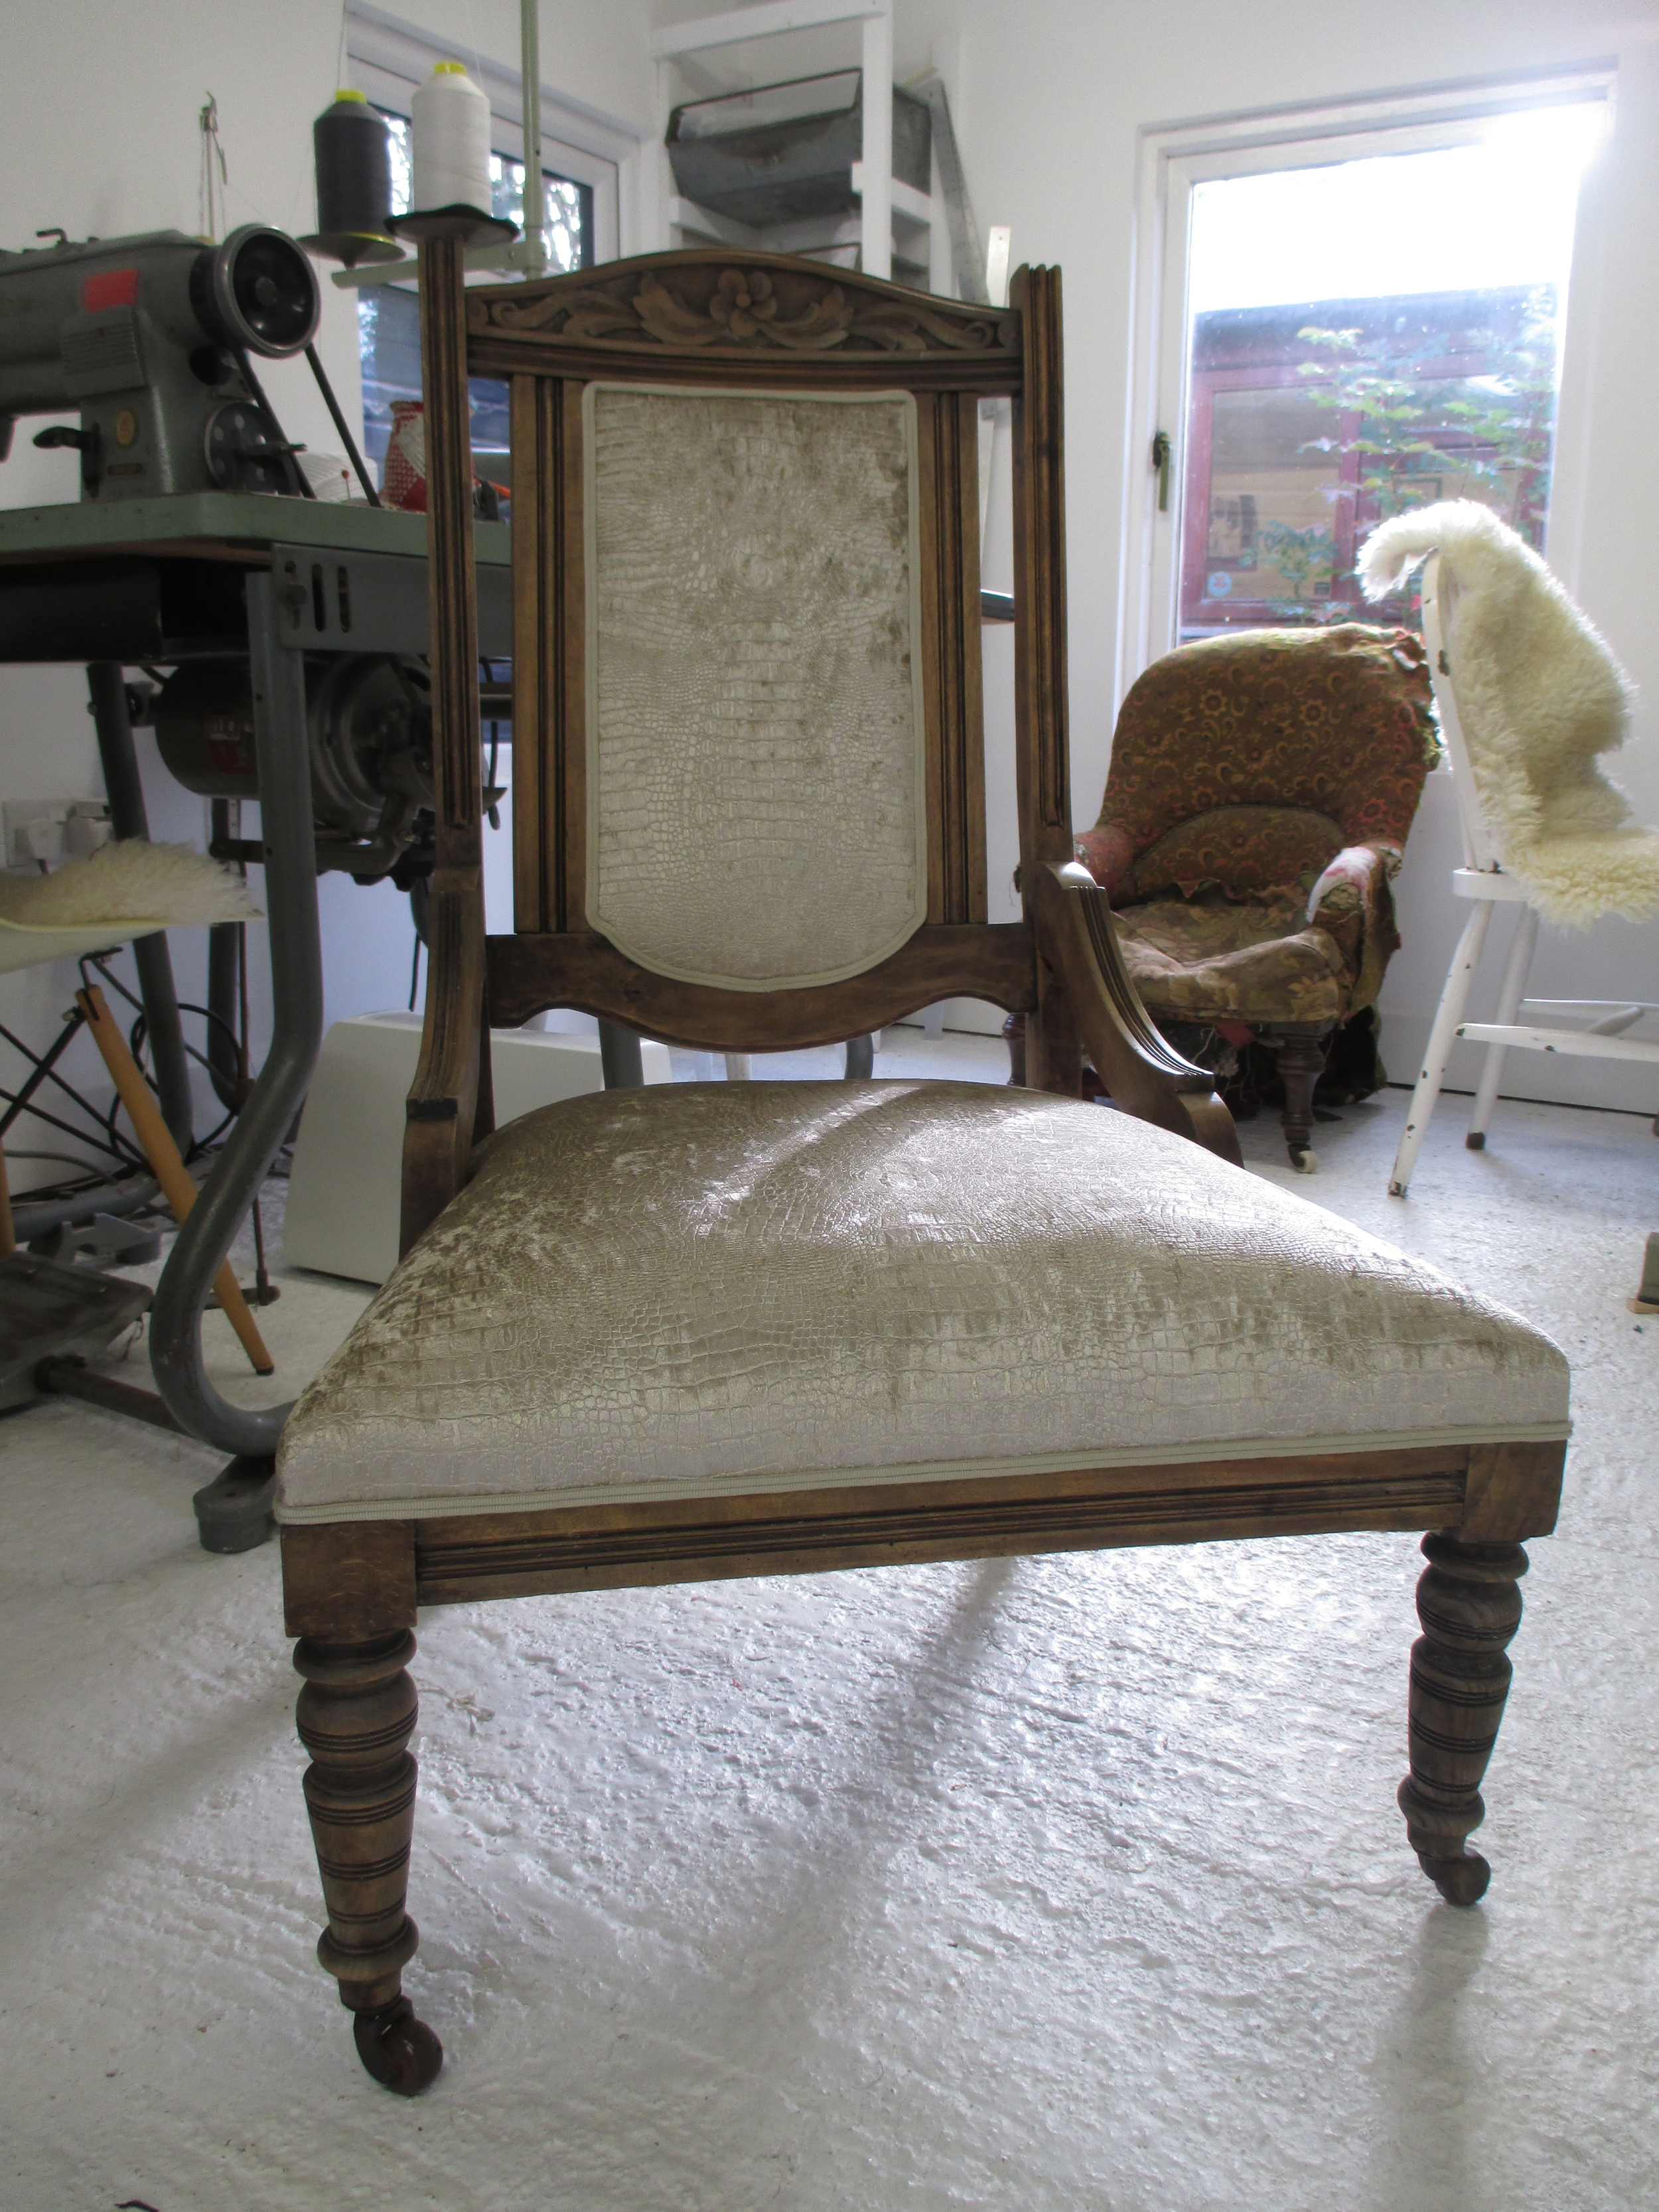 The owner of this chair had stripped it down to the frame and taken off the dark polish finish on the show wood. The shimmery fabric looks great against the freshly waxed wood.